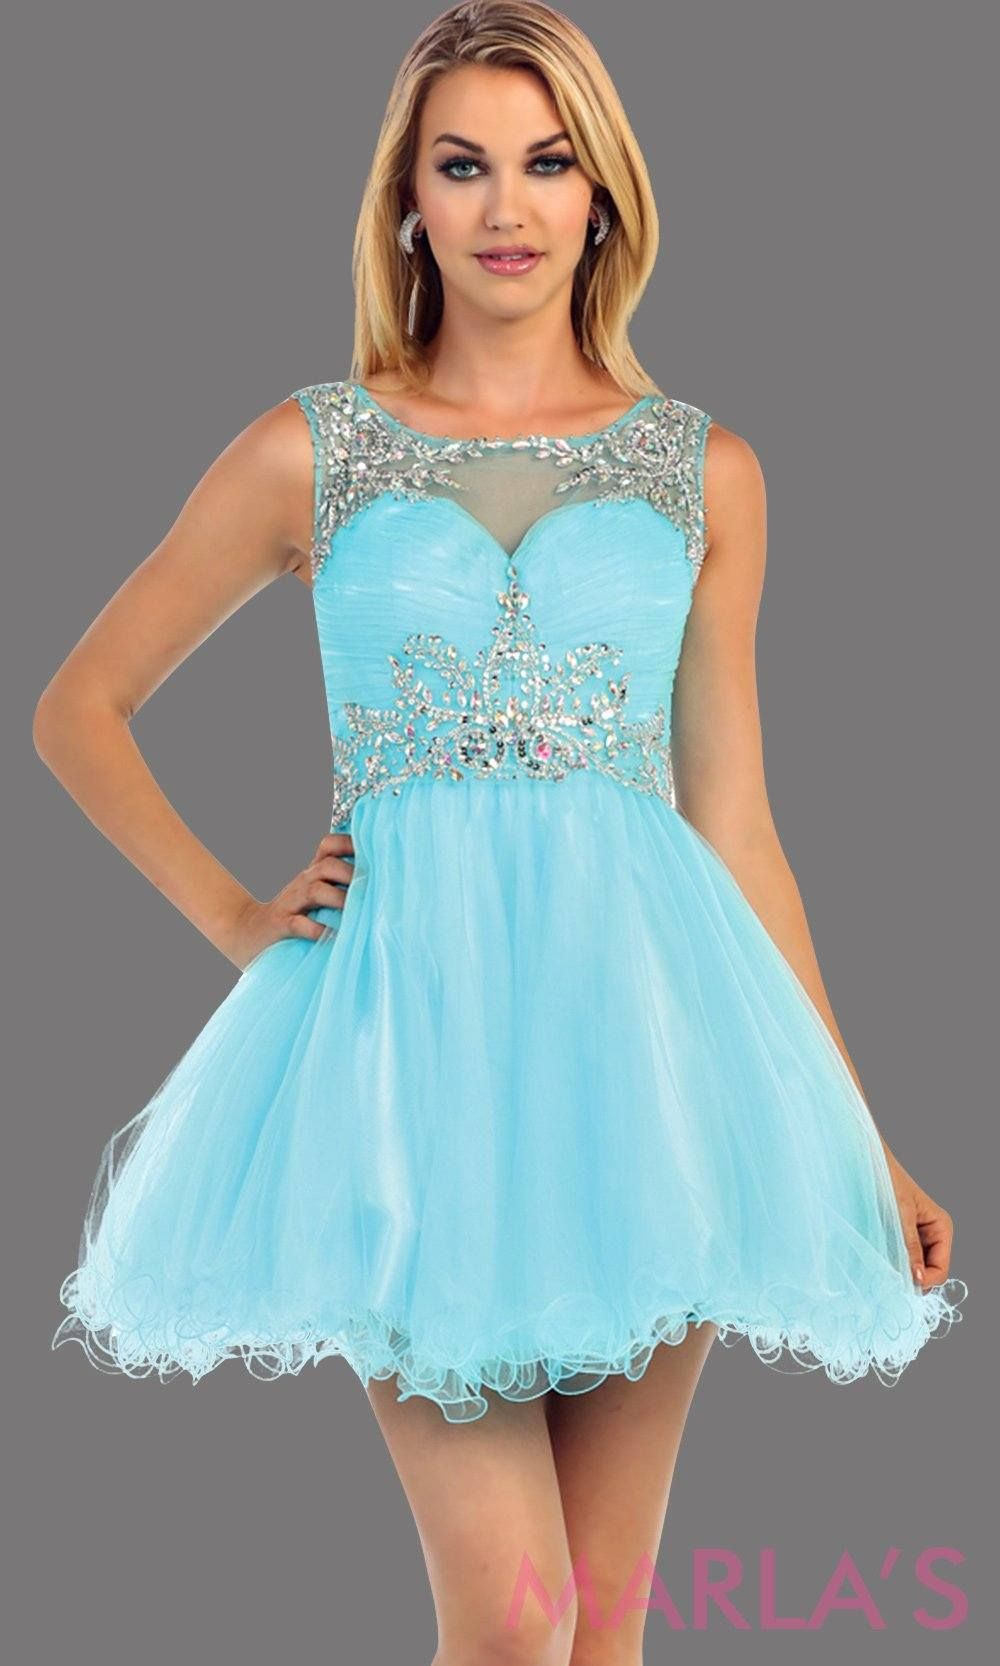 Short Puffy Aqua Dress With Rhinestone Bodice And Built In Cups This Is The Perfect Light Blue Gra Strapless Chiffon Dress Short Tulle Skirt Tulle Skirt Dress [ 1666 x 1000 Pixel ]